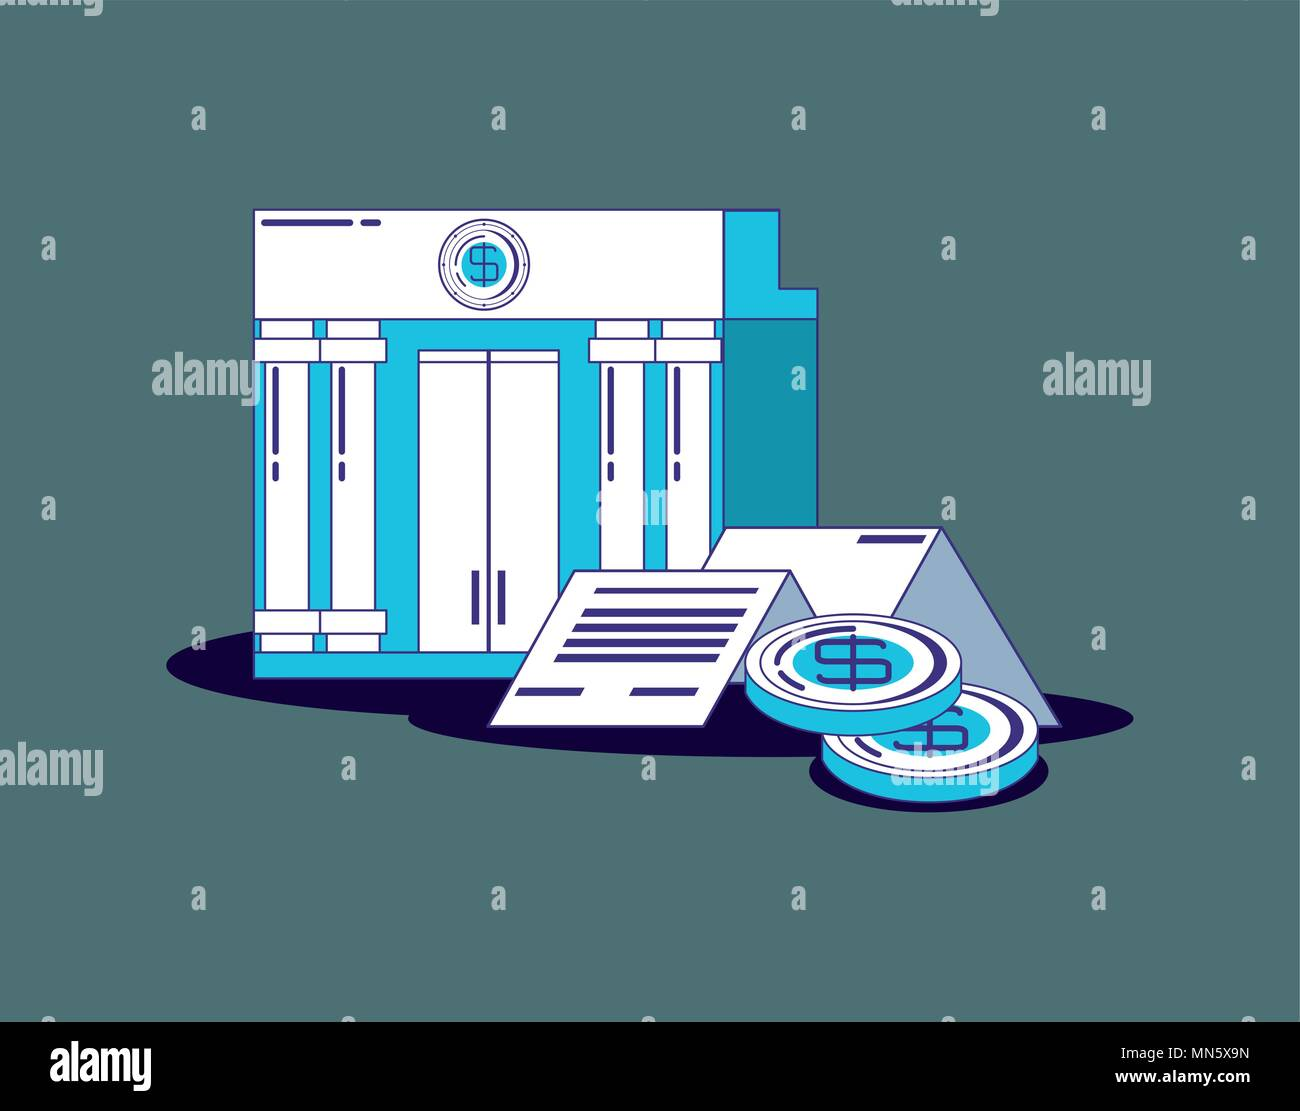 financial technology concept with bank building and coins over gray  background, vector illustration - Stock Image